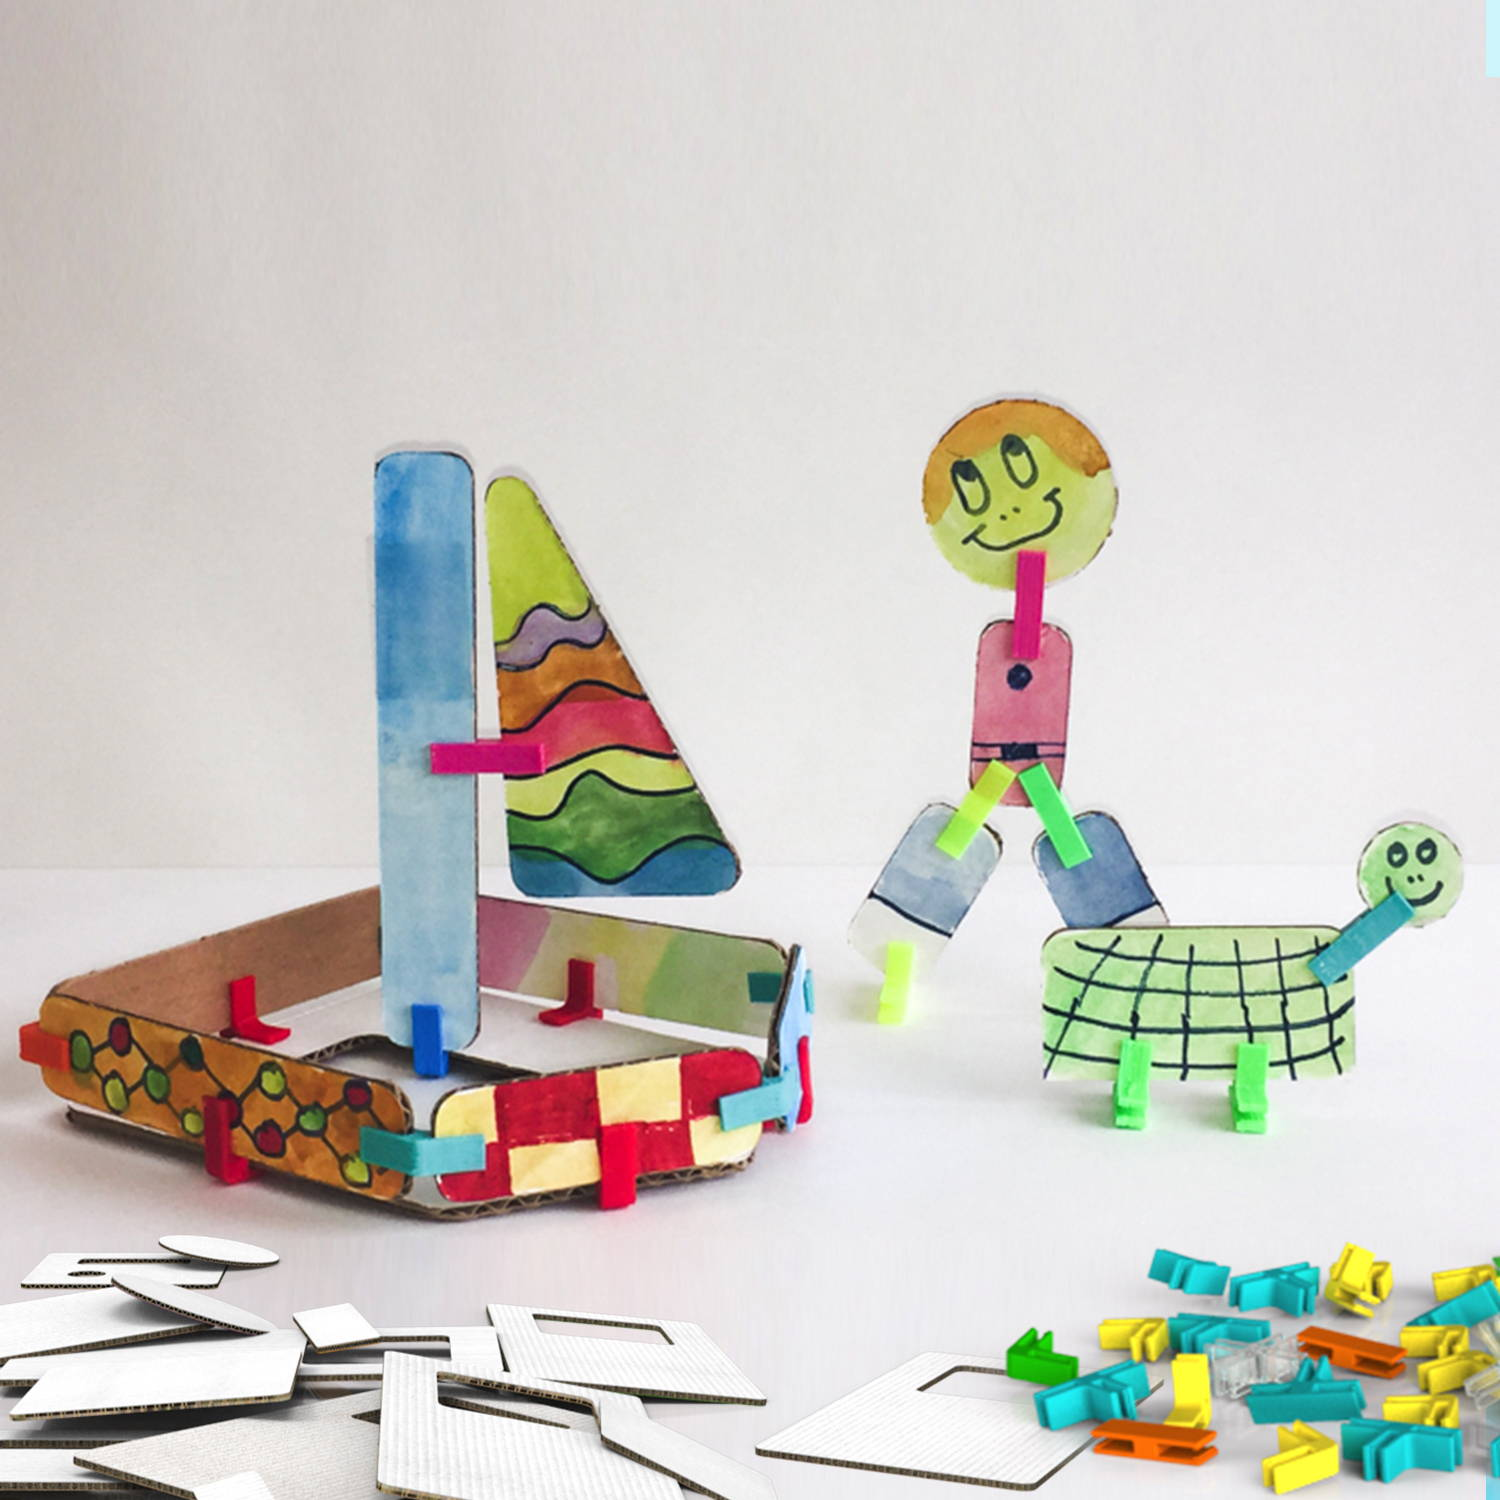 cardboard craft sailboat and animals